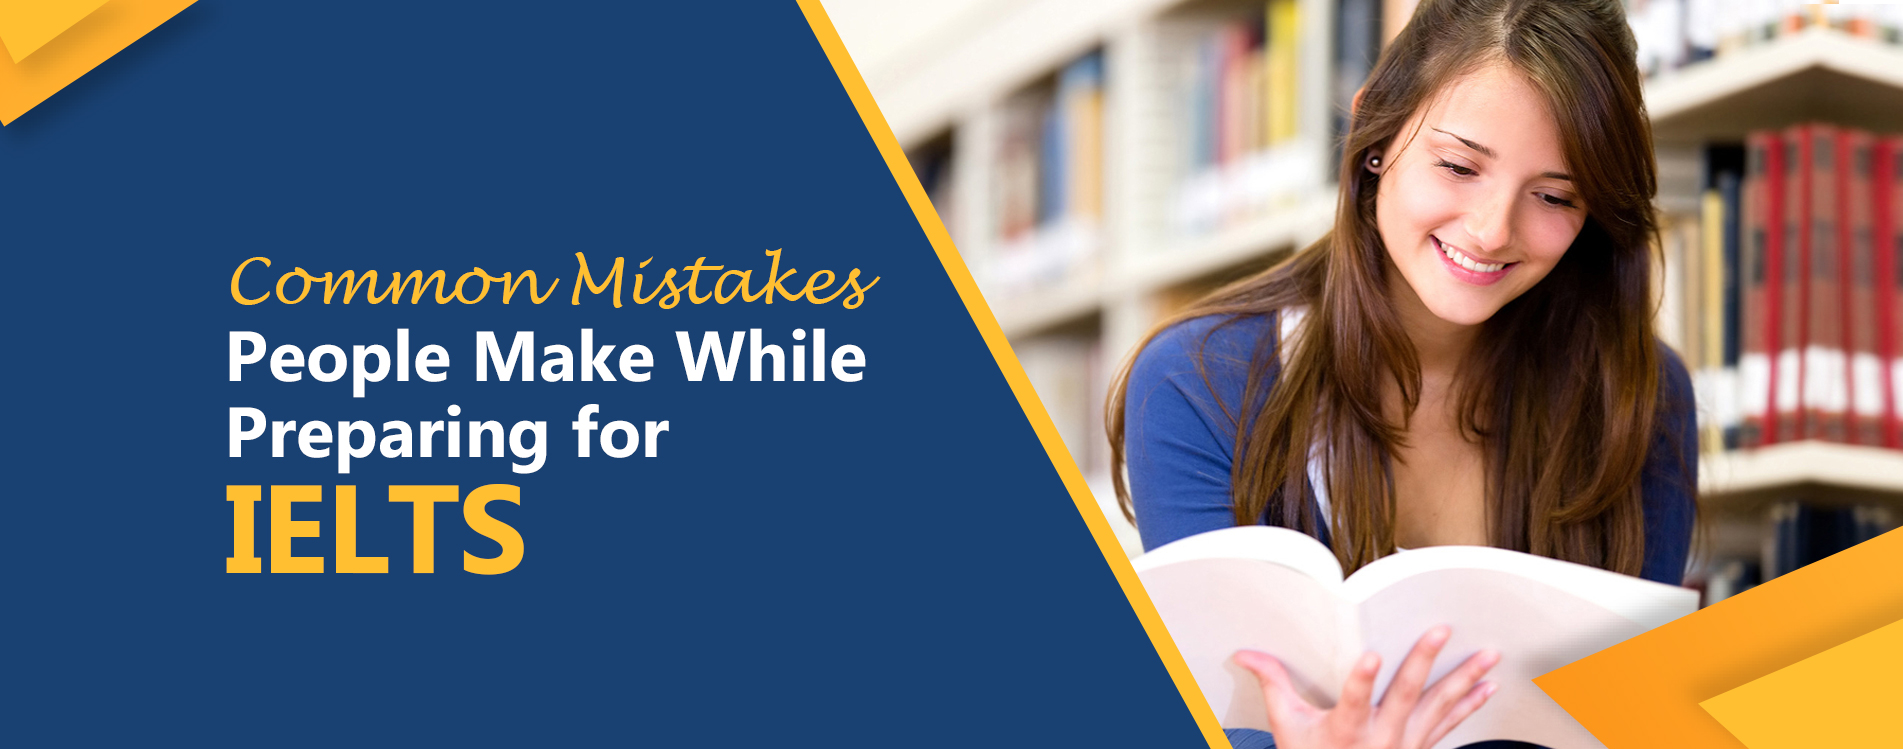 Common Mistakes People Make While Preparing for IELTS